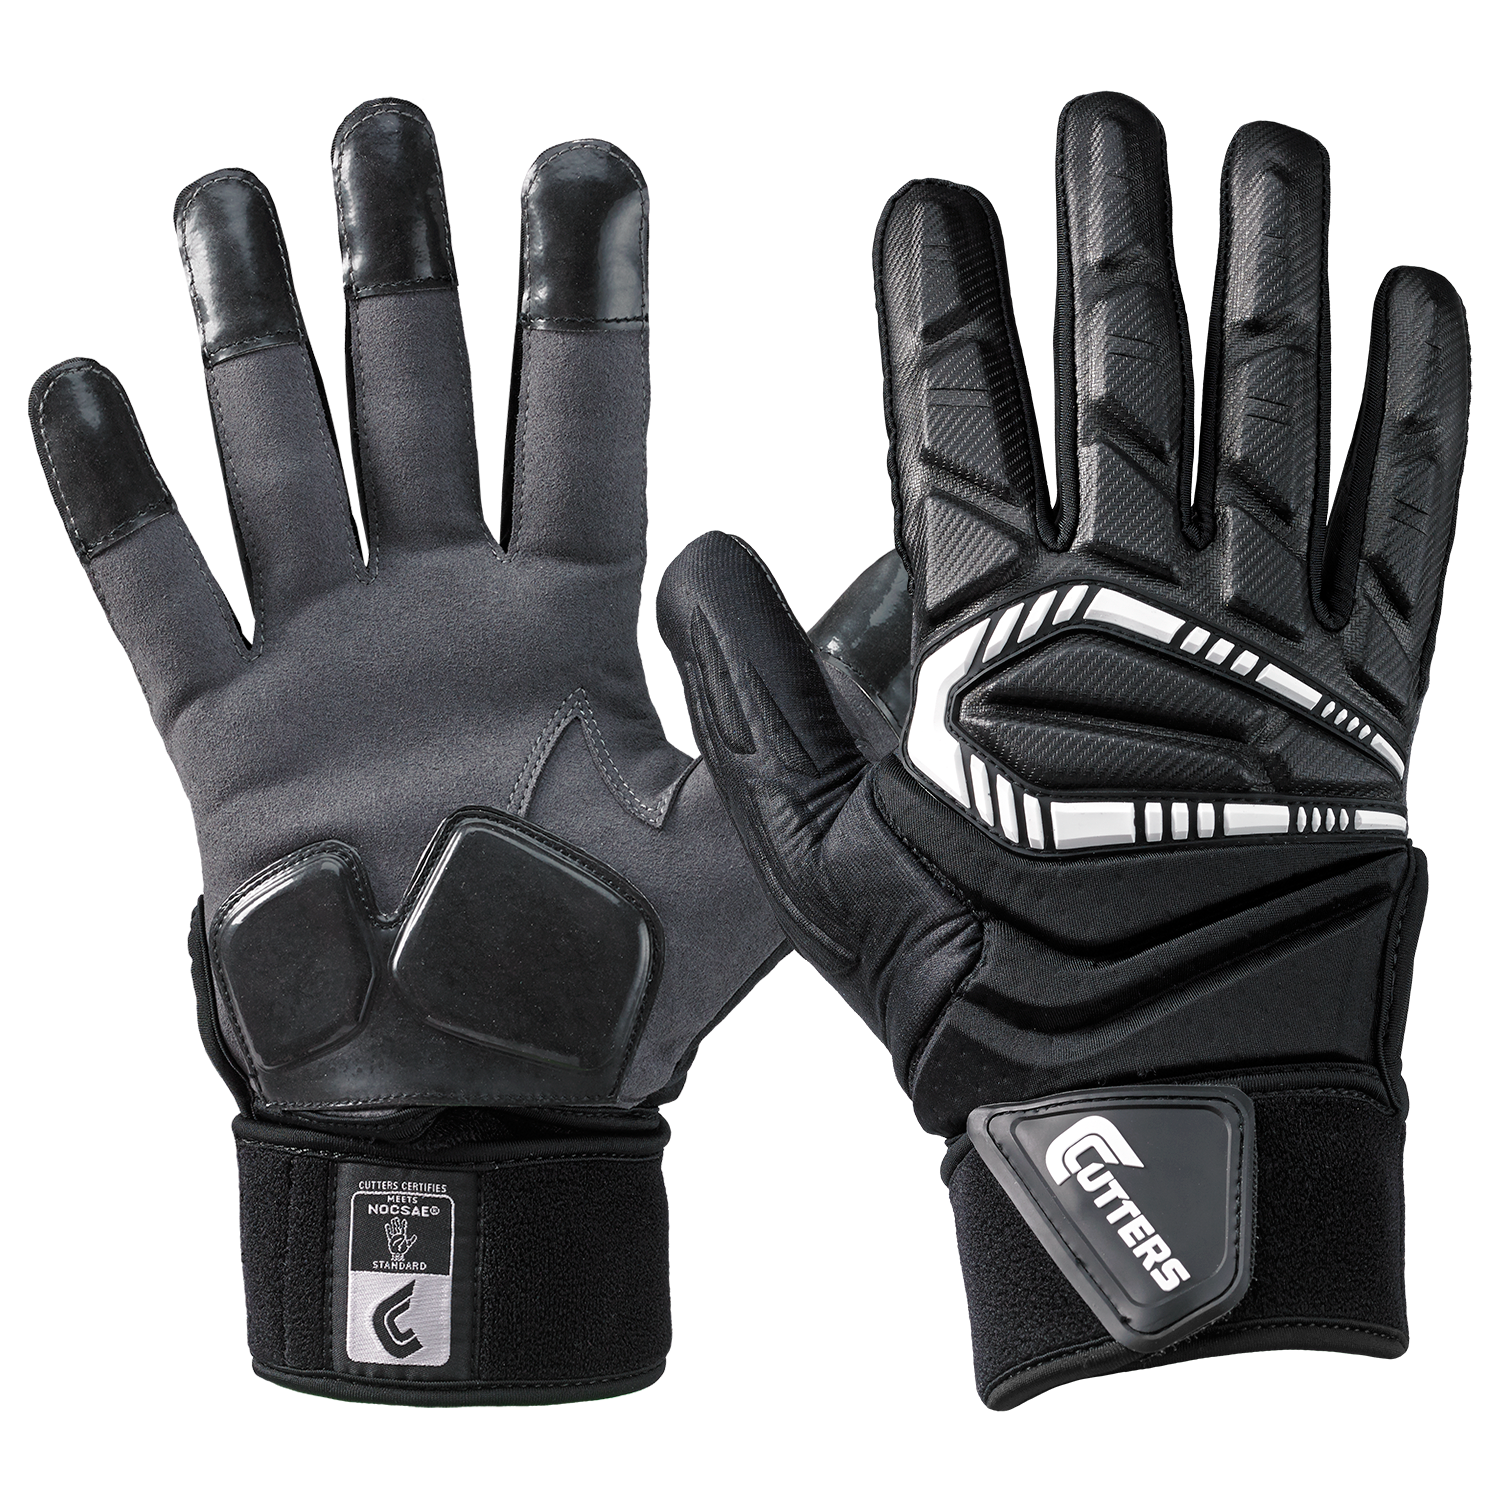 Cutters S930 The Force Lineman American Football Gloves